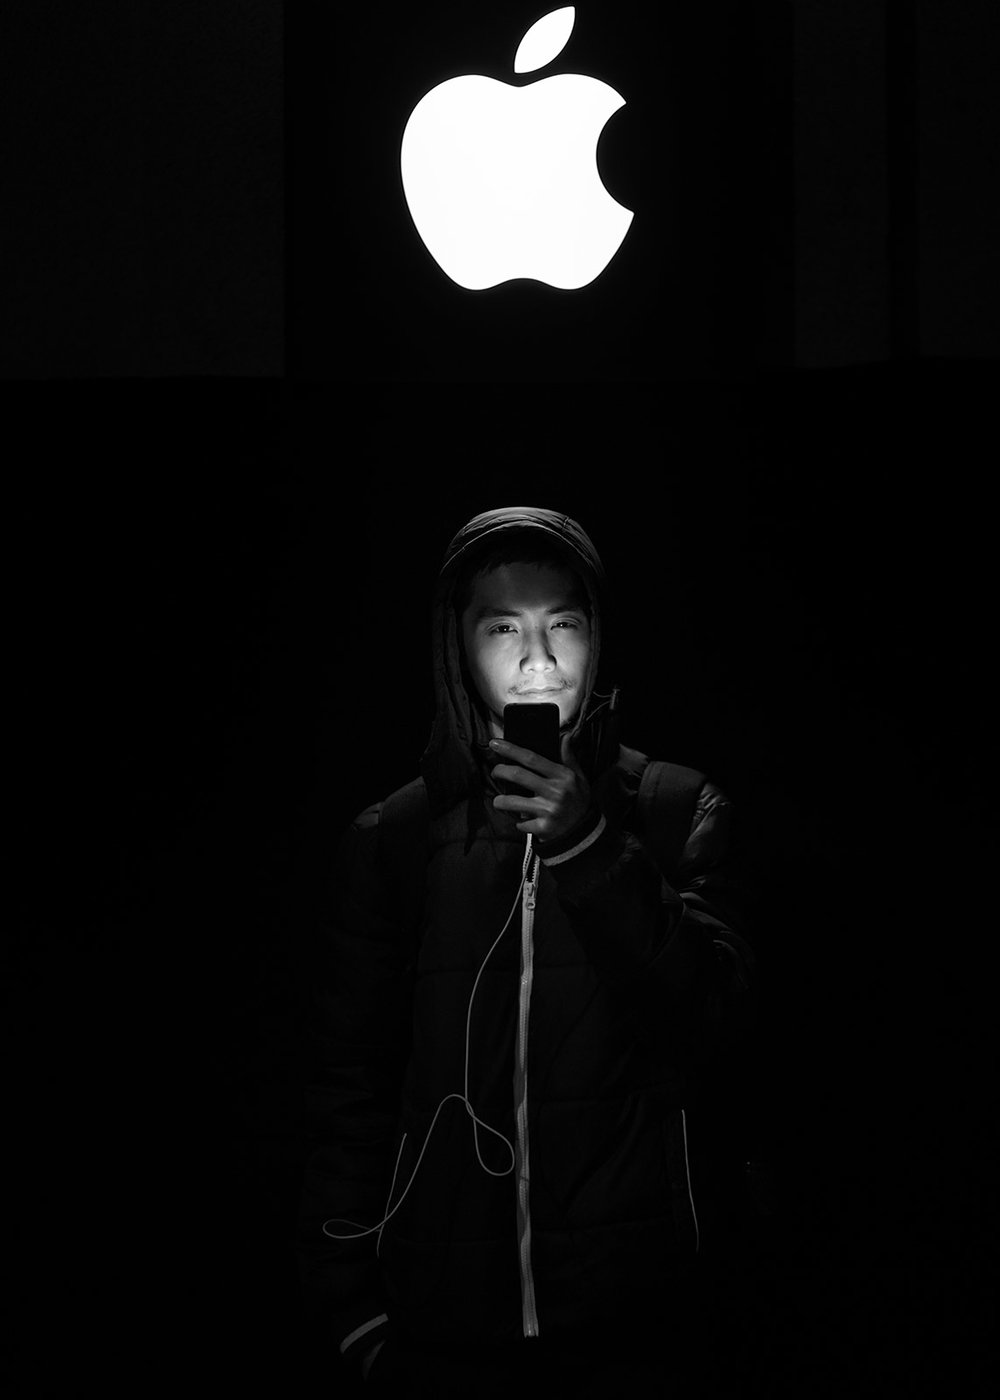 Son Nguyen Thai from  Vietnam  poses for a picture as he illuminates himself with his mobile phone at  Puerta del Sol Apple Store  facade the dawn before the company launches their  Iphone 7  and 7 Plus on September 16, 2016 in Madrid, Spain. Cooking student Son Nguyen Thai, 28, waited for 10 hours at Puerta del Sol Apple Store outdoors in order to purchase his second Iphone model: an Iphone 7.